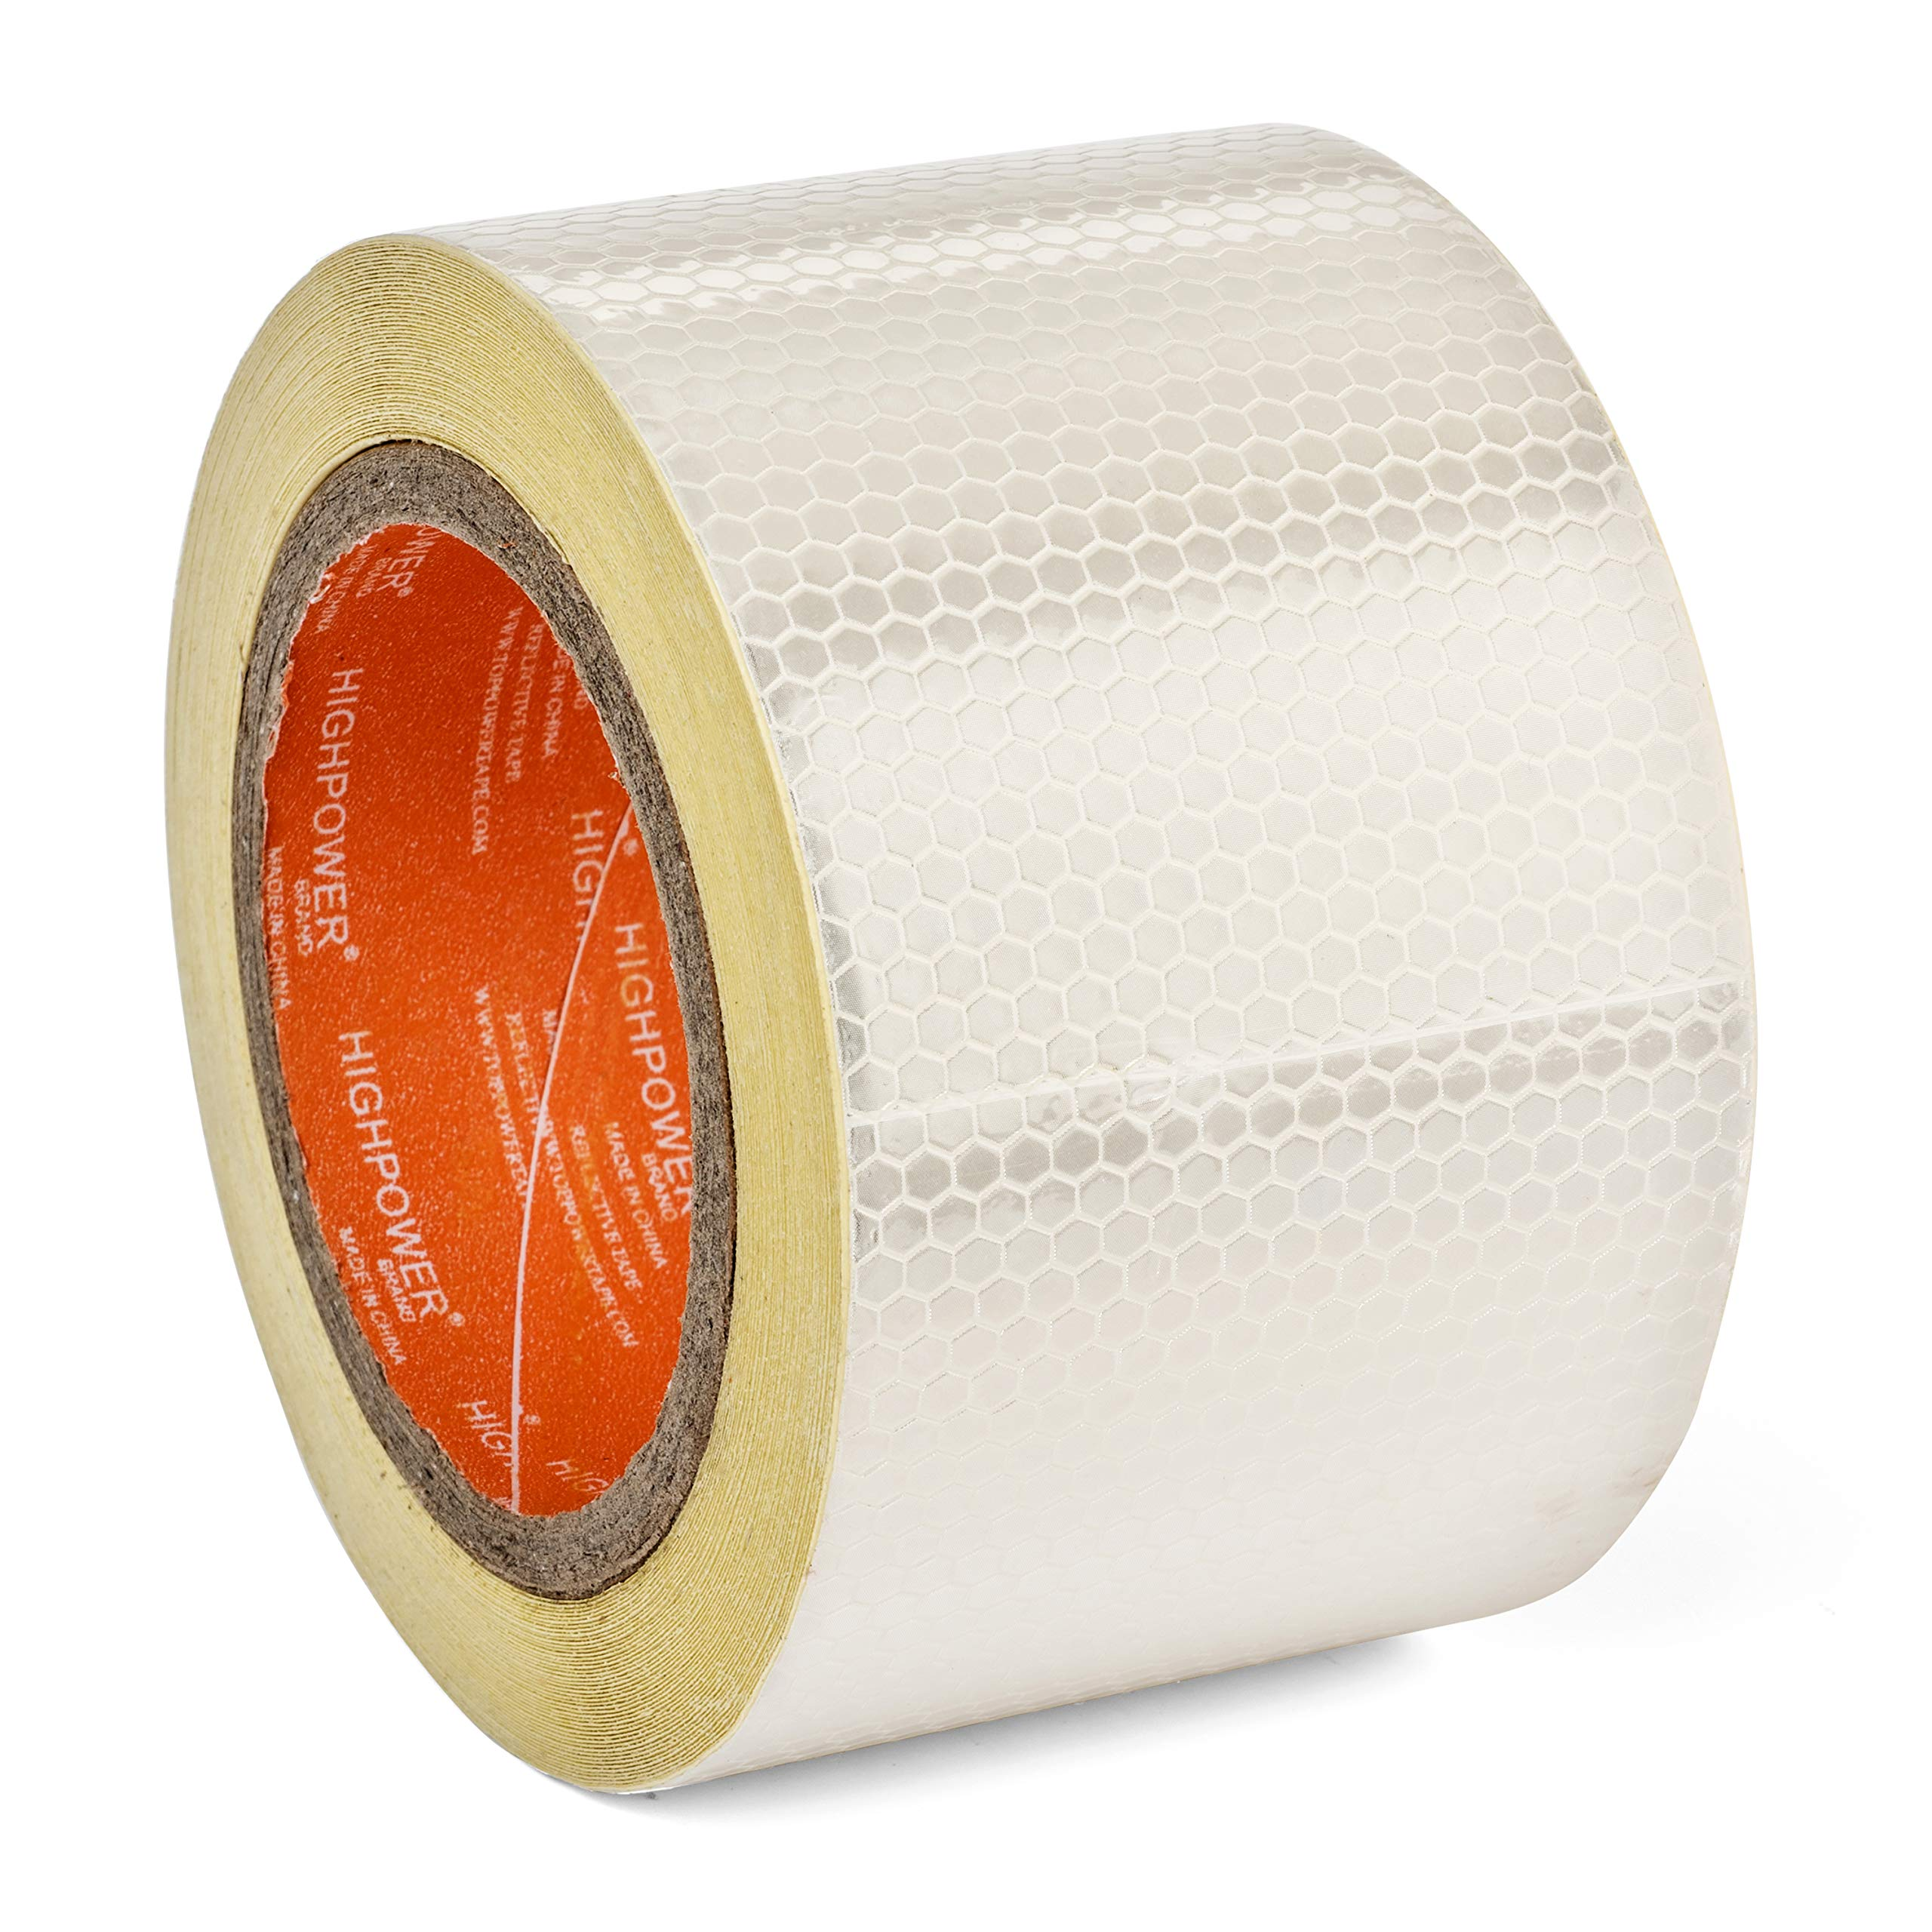 3'' X 50 ft Reflective Safety Tape Solas Approved White - Reflector Tape High Intensity Grade Marine Trailer Trucks Auto Reflectors -Typhon East